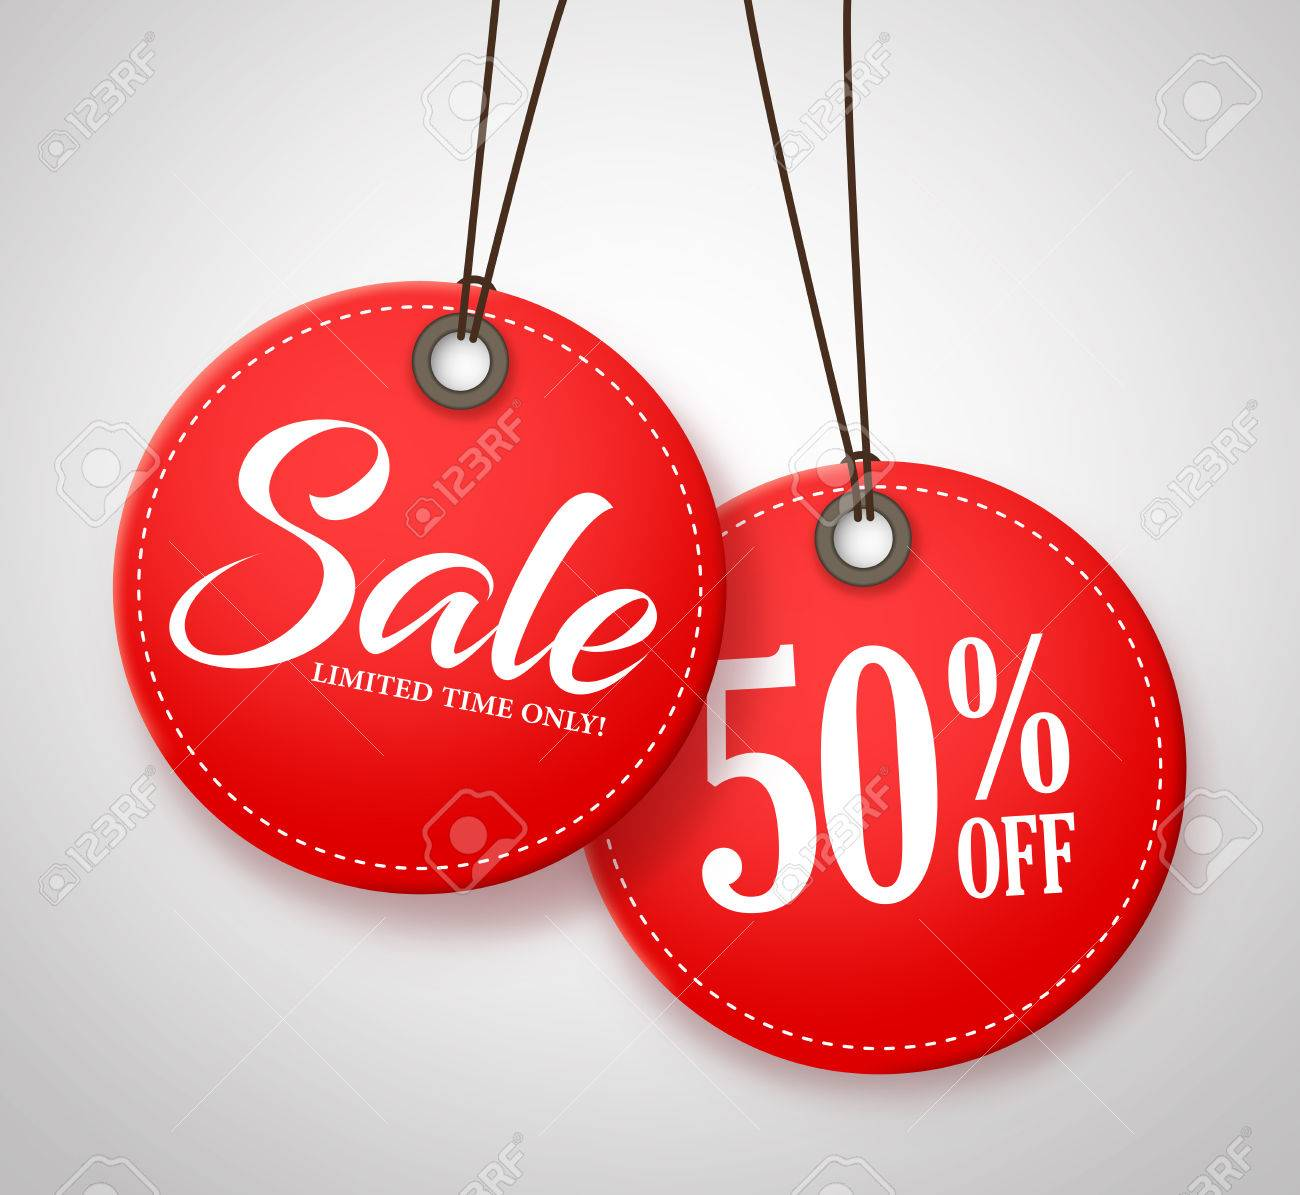 Circle Sale Tags Design with Half Price Text in Red Color Hanging in White Background. Vector Illustration. - 59493005